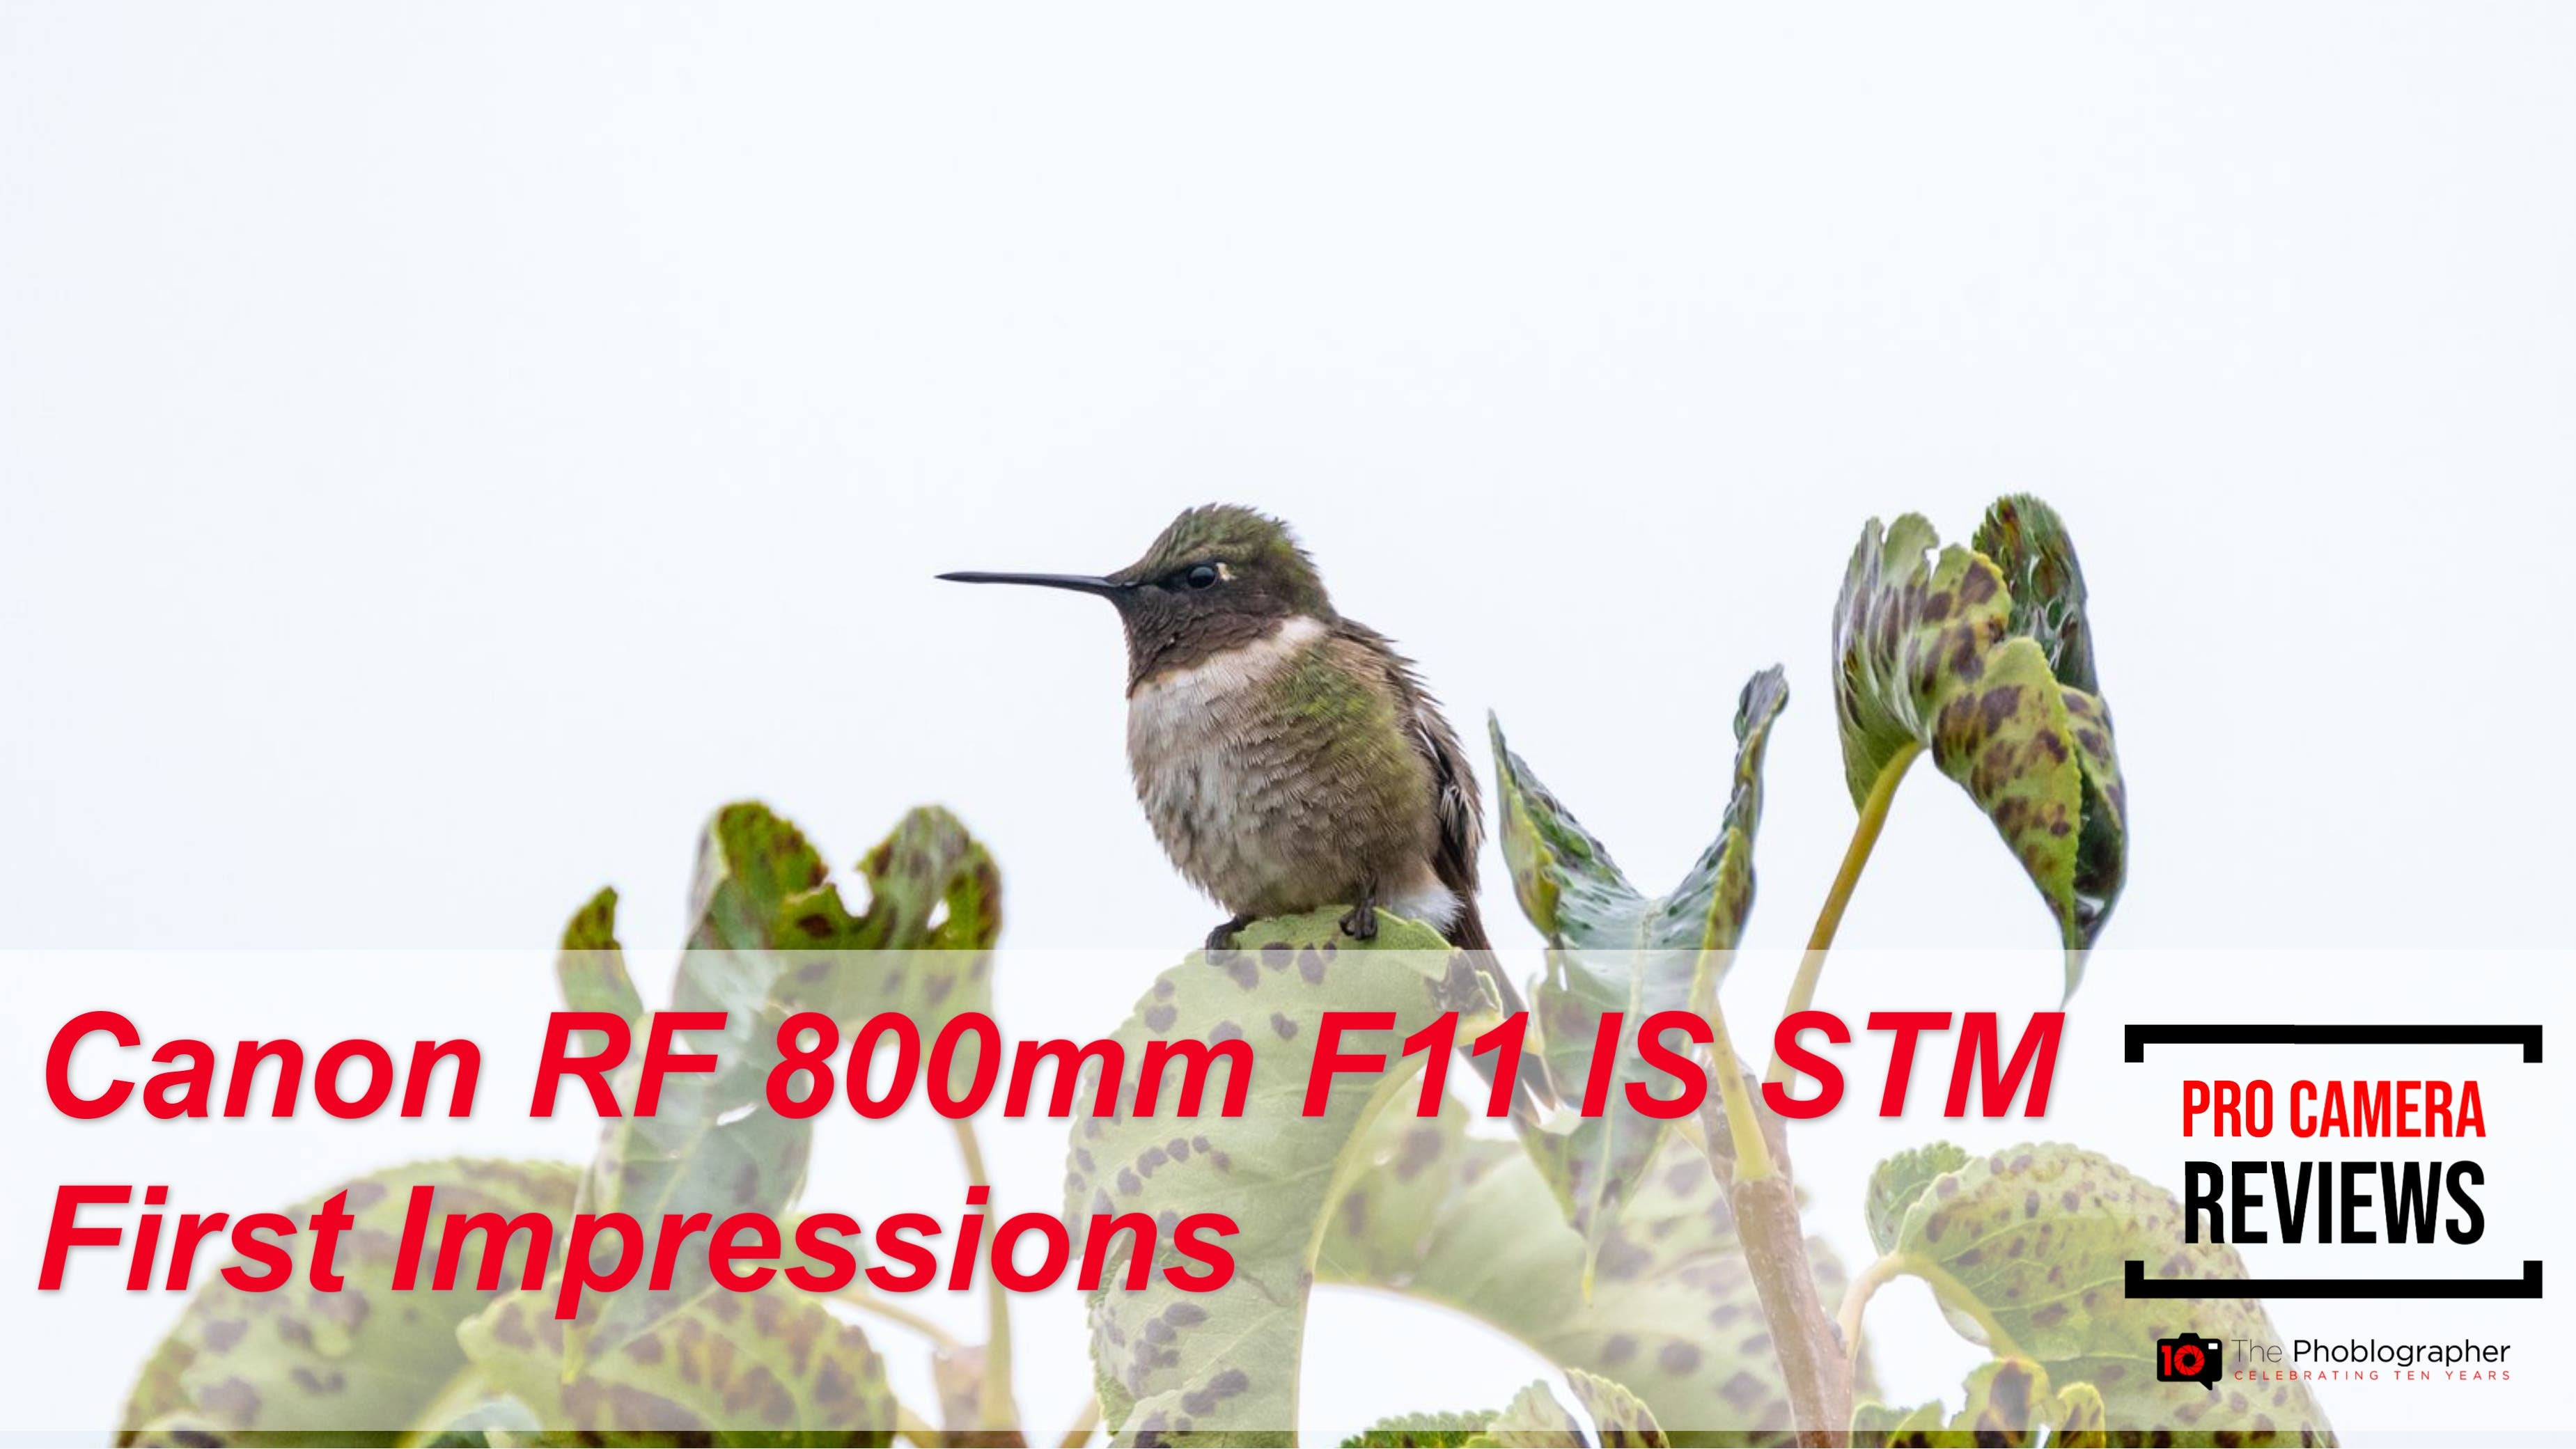 Is the Canon RF 800mm F11 IS STM for Wildlife?